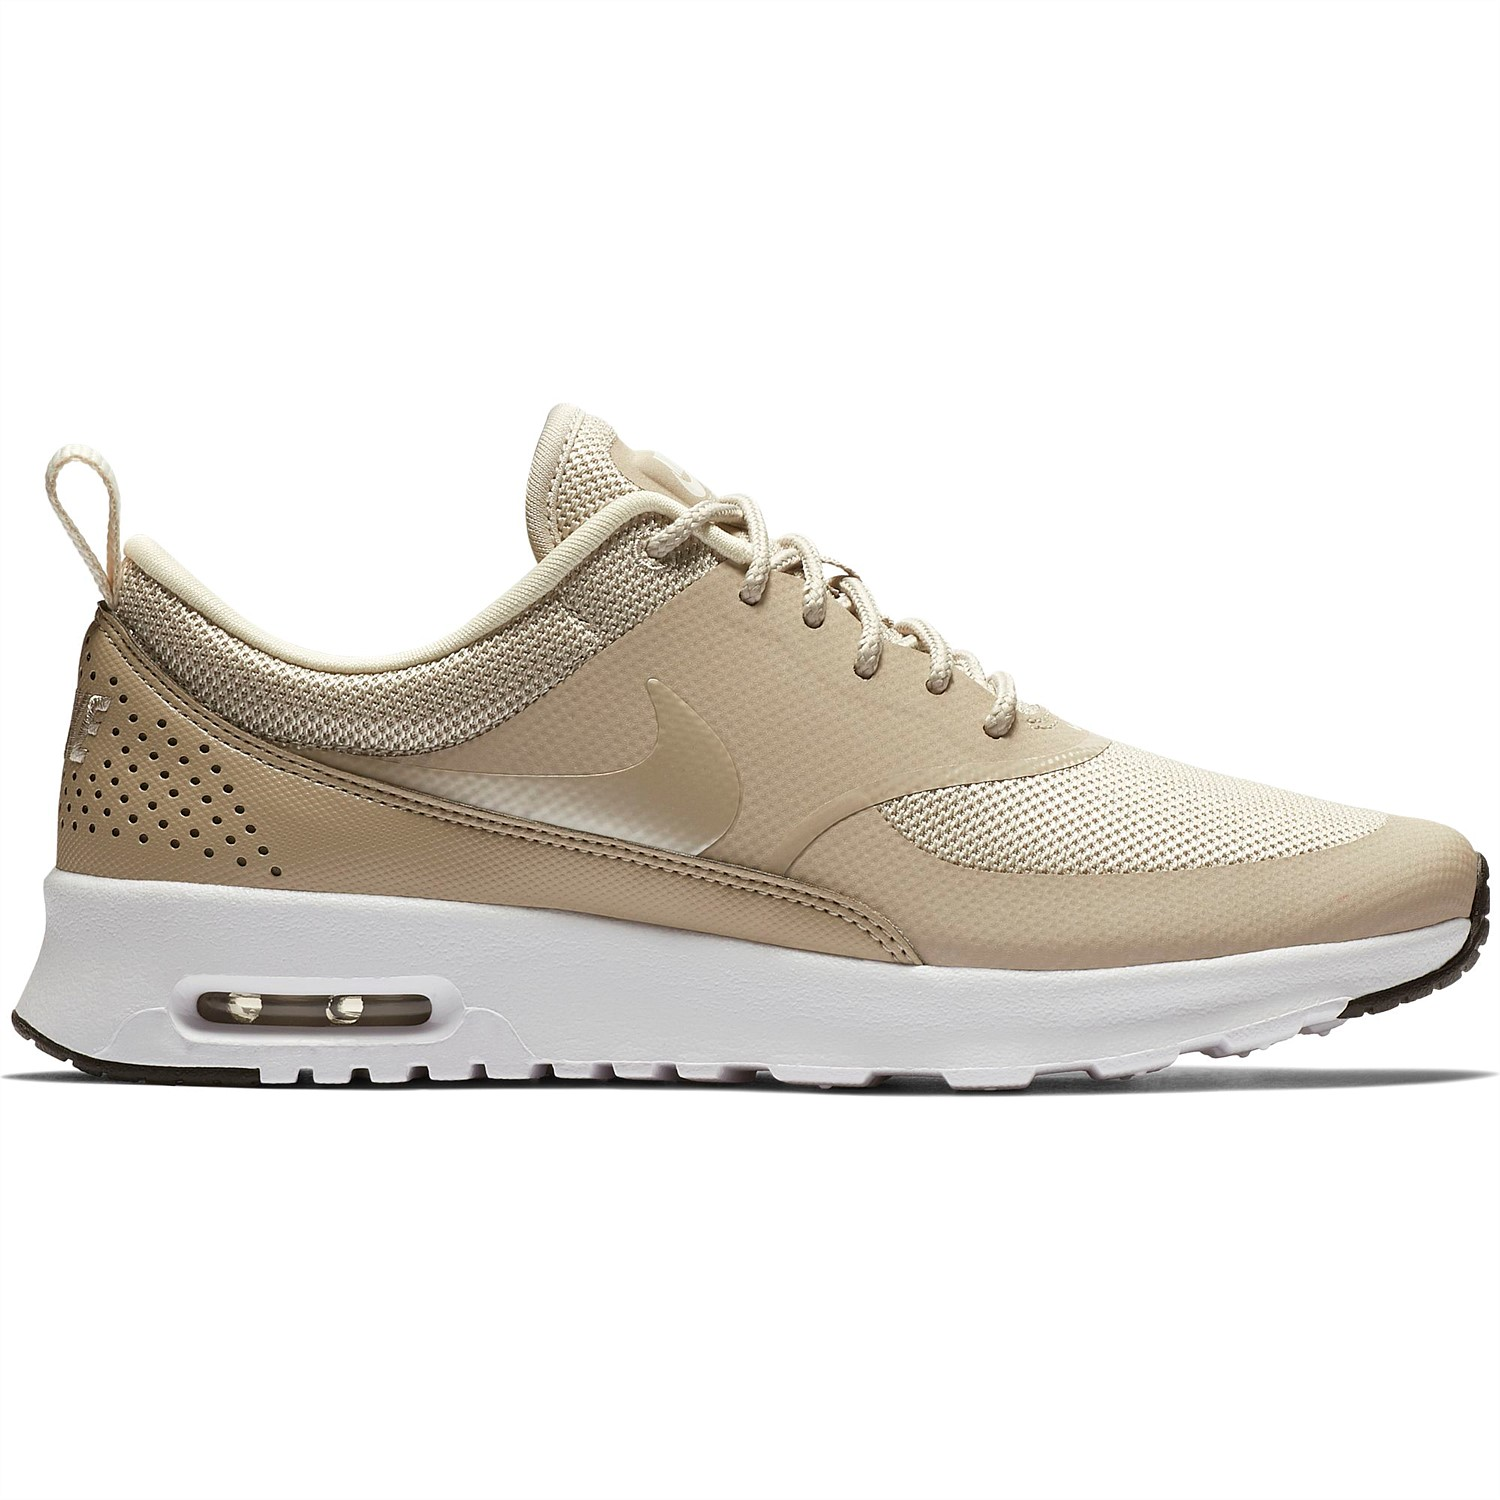 best website 45784 a4e1f Women s New Arrivals   Women s New Arrivals Clothing and Footwear Online    Stirling Sports - Air Max Thea Womens